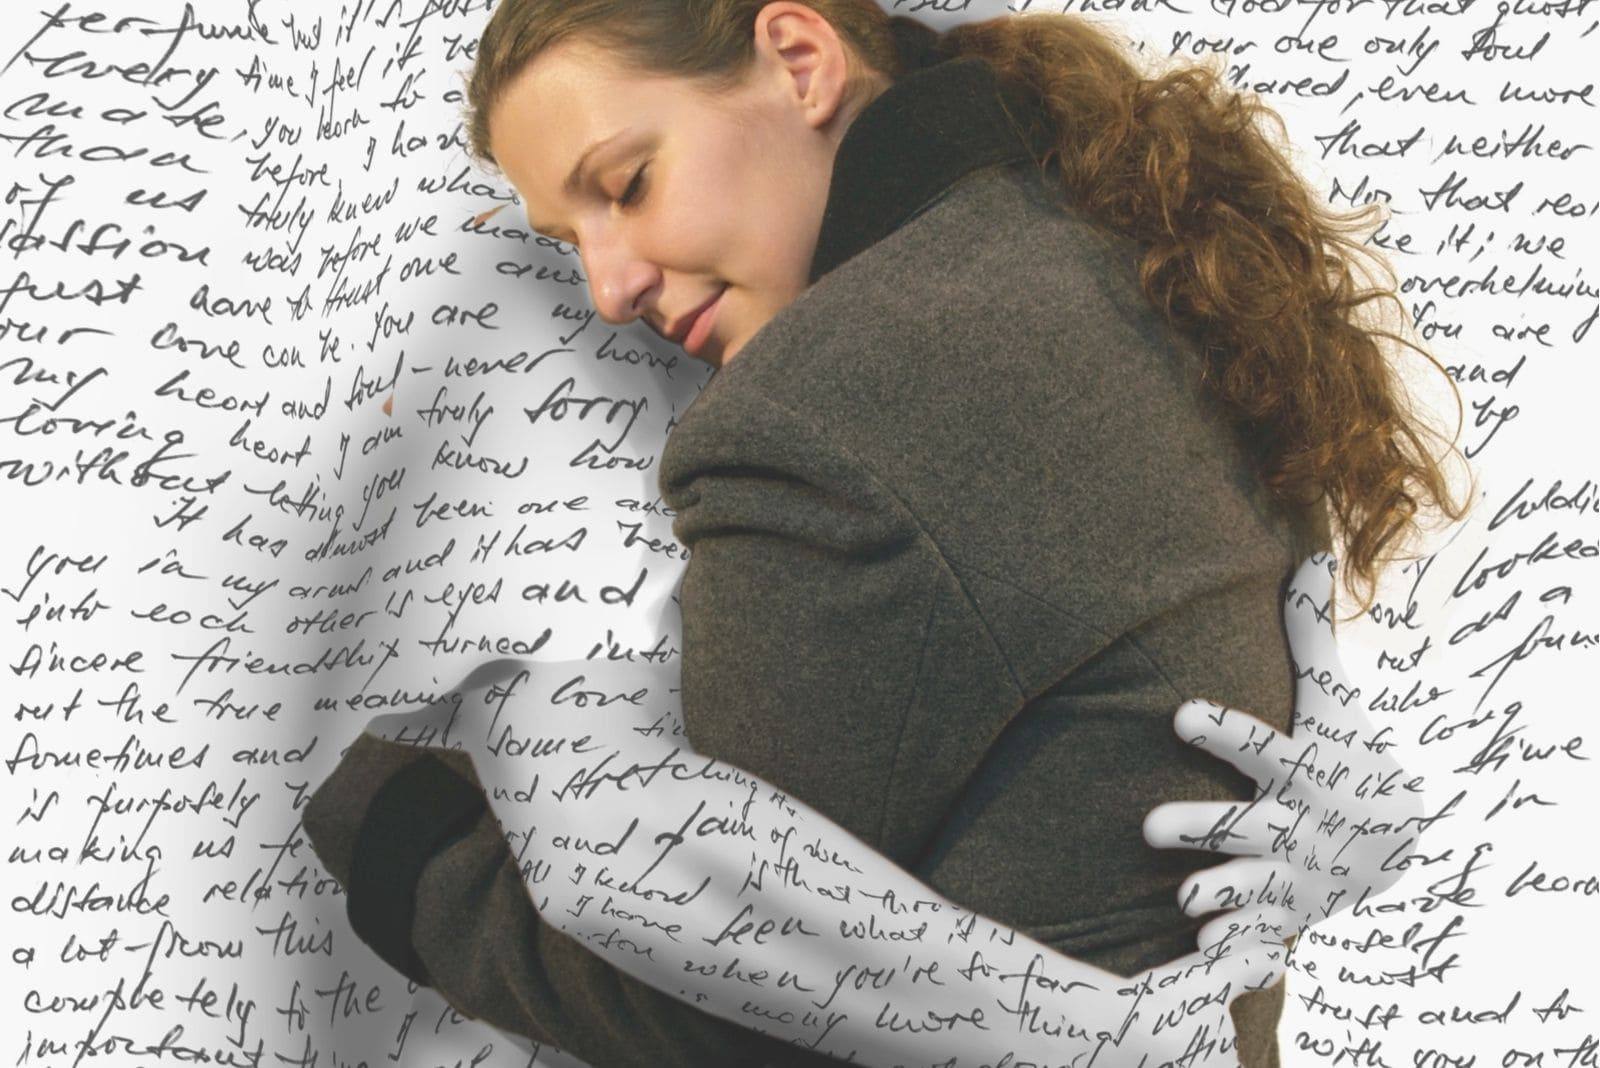 image of love letter embracing the woman with love